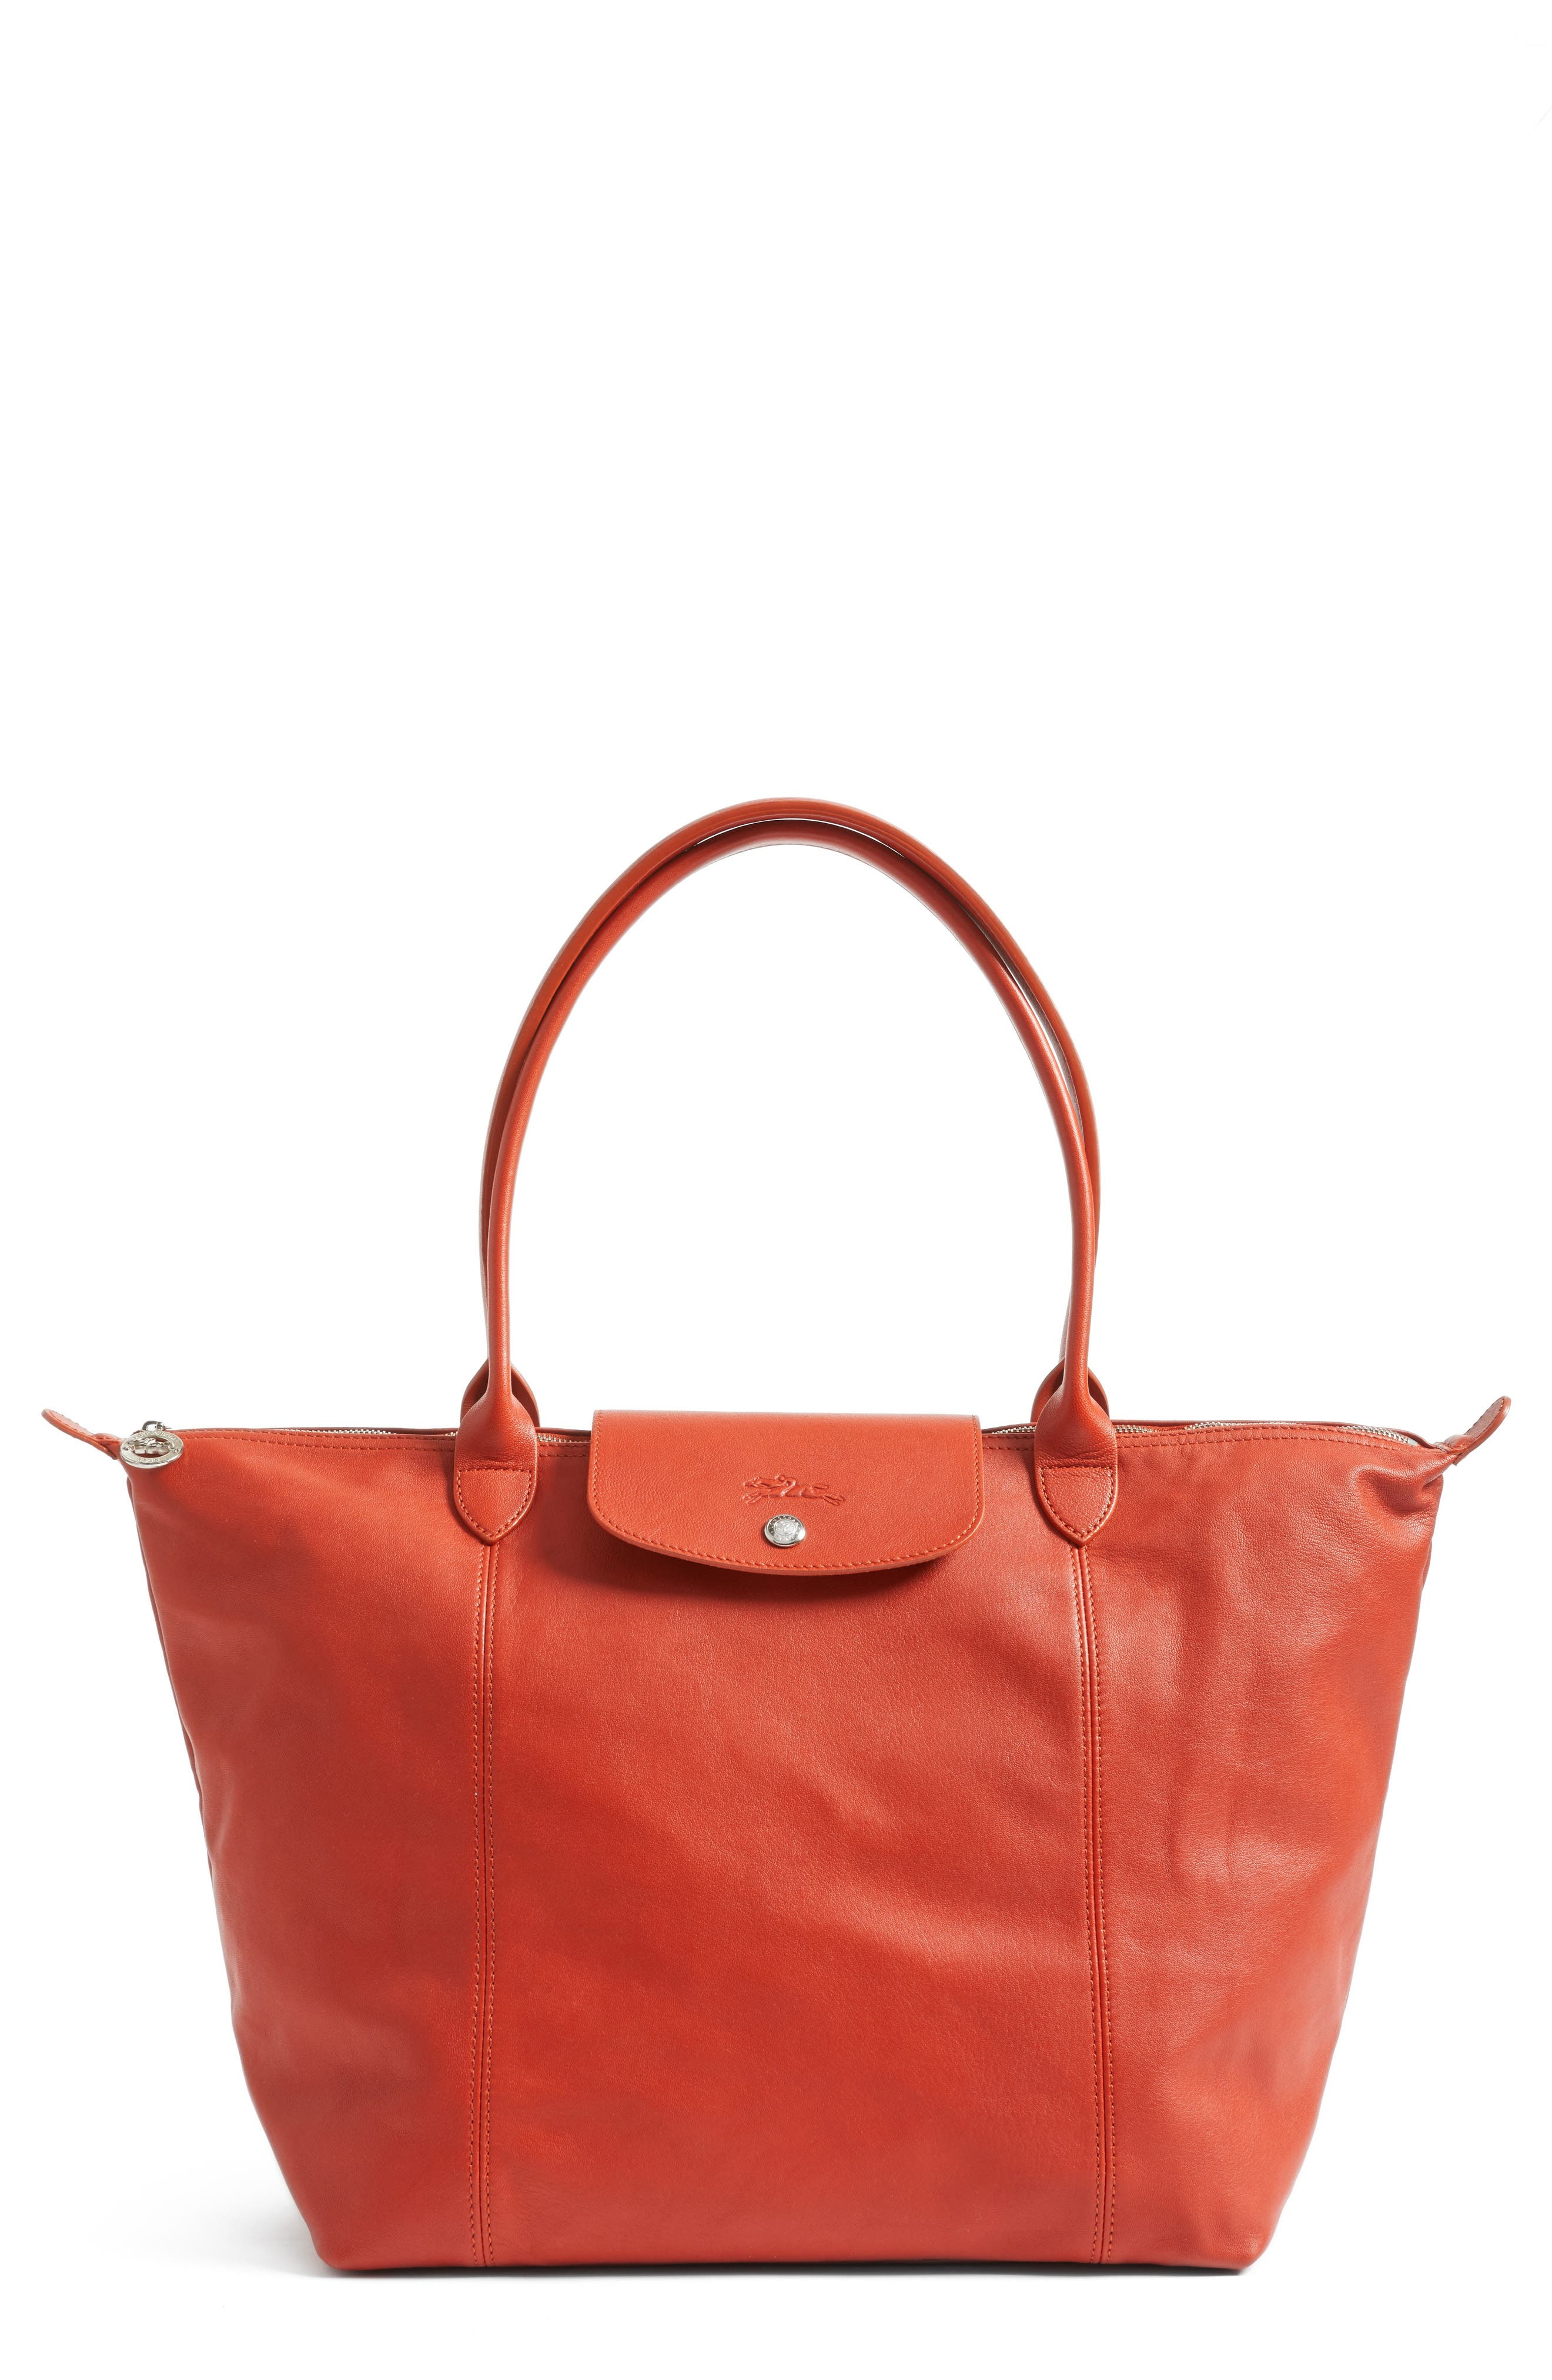 Main Image - Longchamp Le Pliage Cuir Leather Tote (Nordstrom Exclusive)